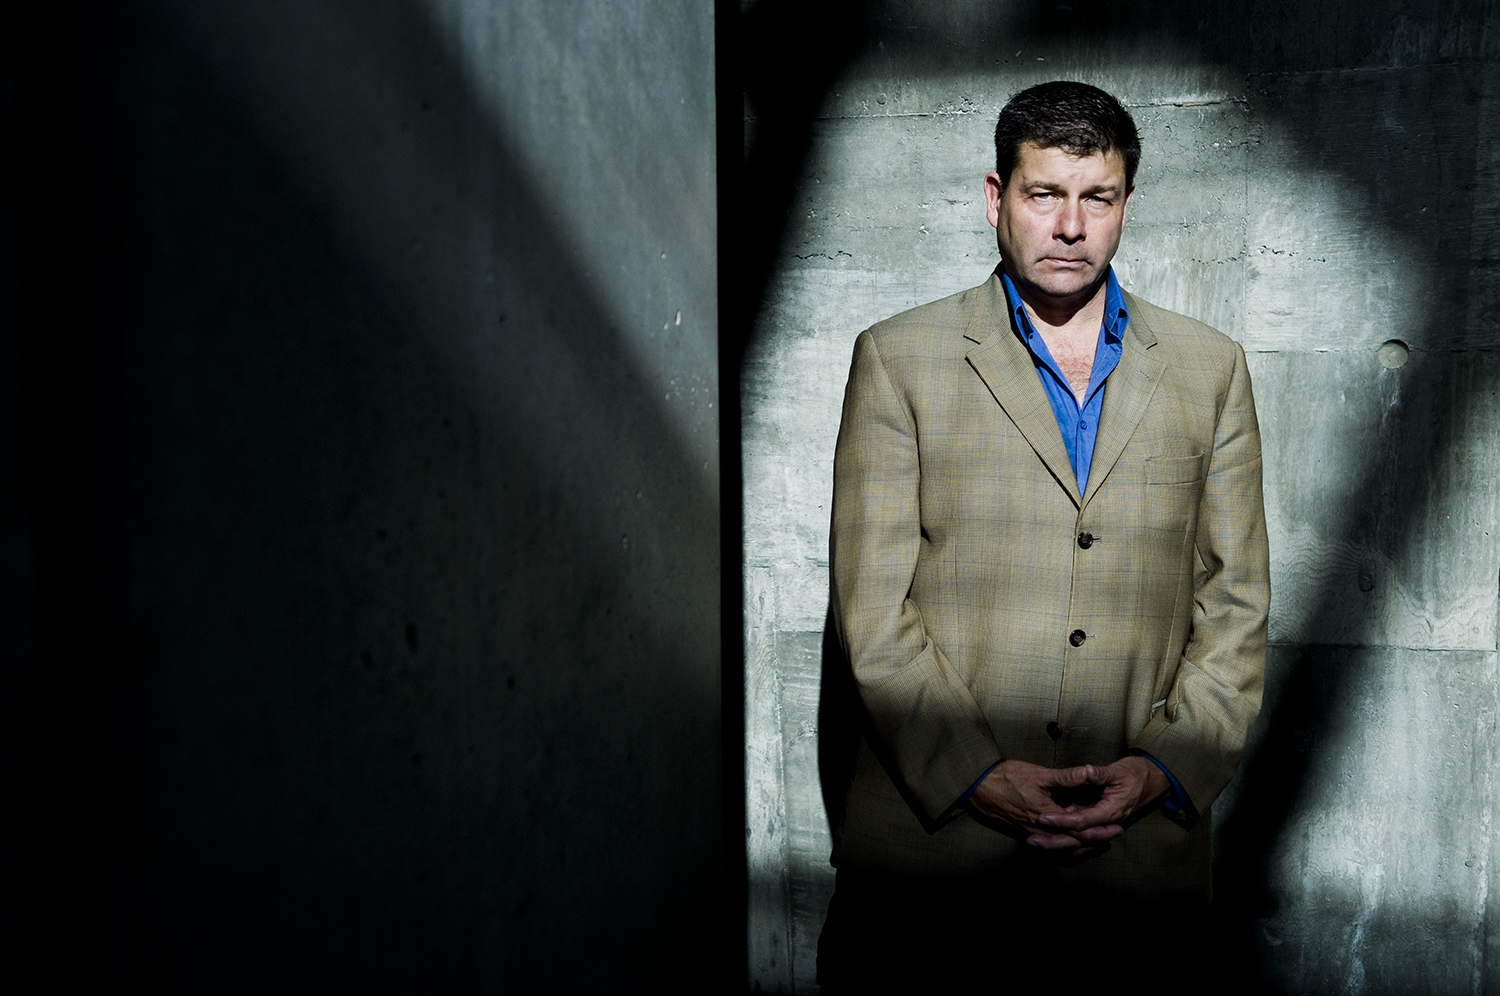 Canadian journalist Scott Taylor is photographed at War Museum in Ottawa. In 2004, while covering the conflict in Iraq, Taylor was kidnapped by Ansar Al-Islam and held captive for five days.